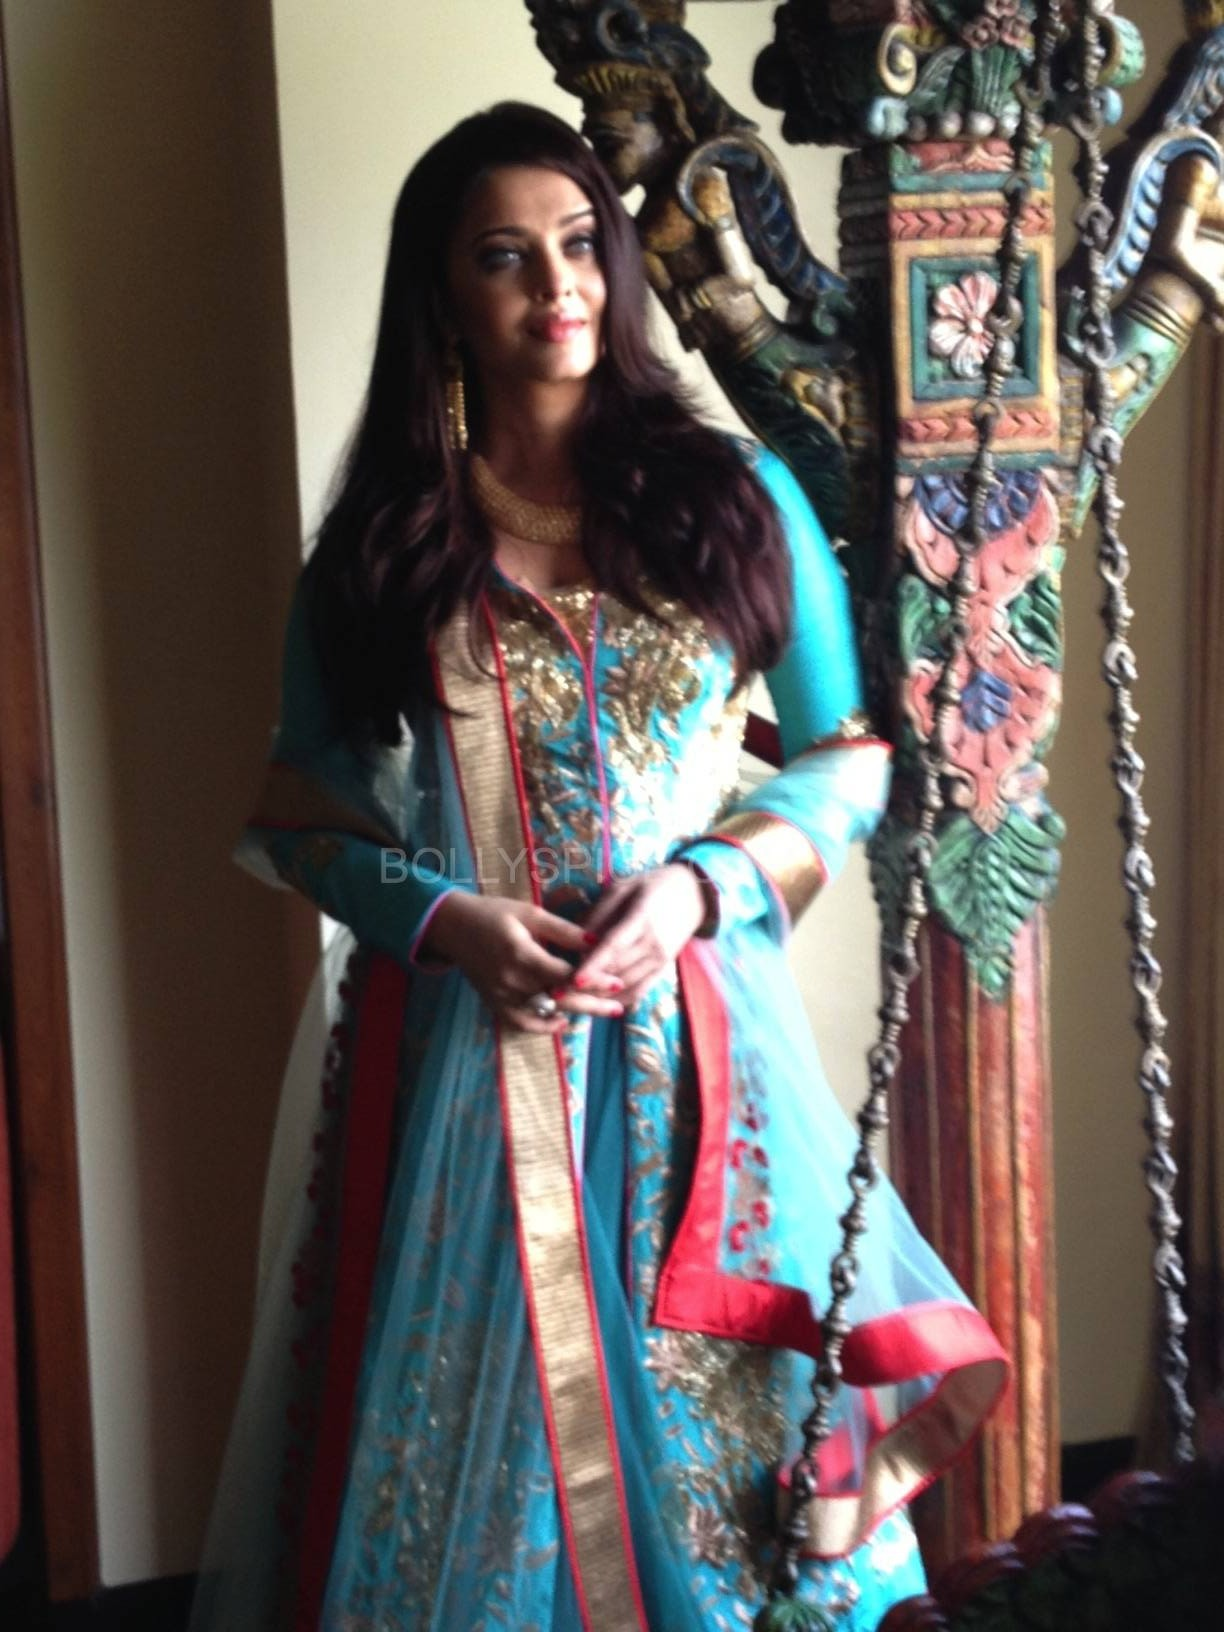 aishwaryaatkaylan11 e1378583804447 Aishwarya Rai Bachchan at opening of Kalyan Jewellers in Surat Exclusive Pic!